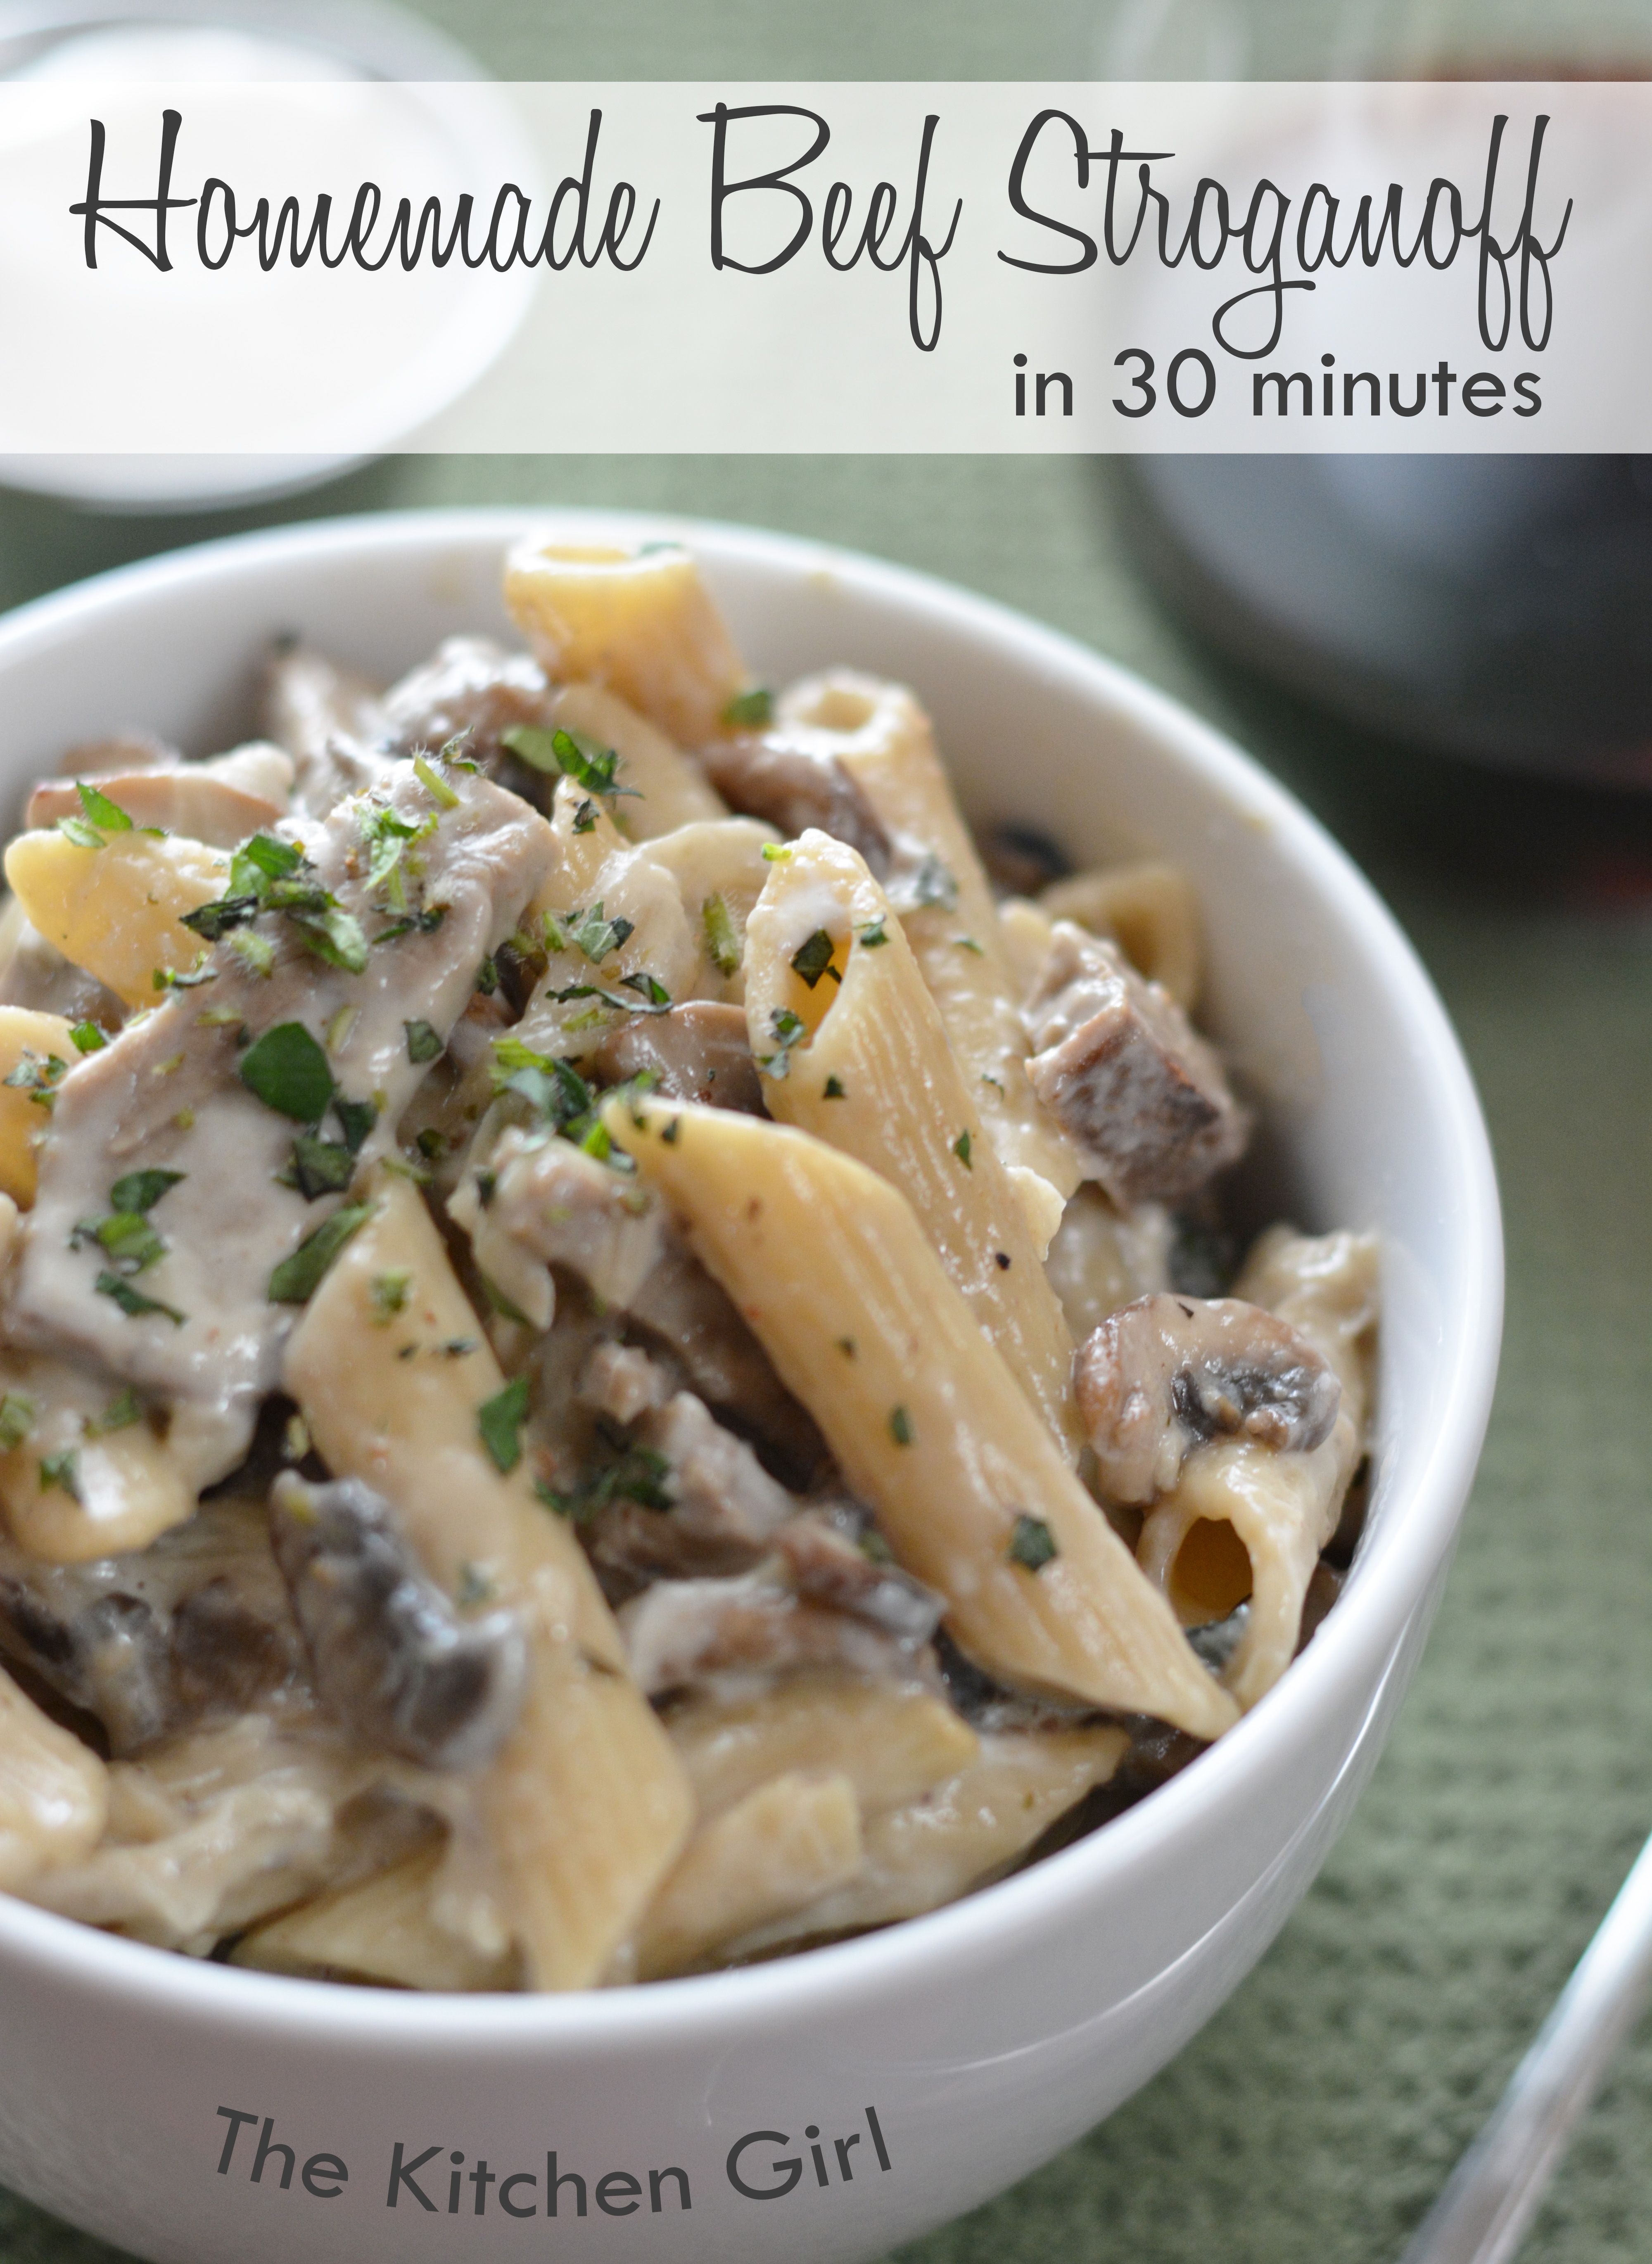 Make Your Own Beef Stroganoff In 30 Minutes With An Easy White Sauce Recipe Uses 1 Milk Instead O Homemade Beef Stroganoff Beef Stroganoff Easy Steak Recipes